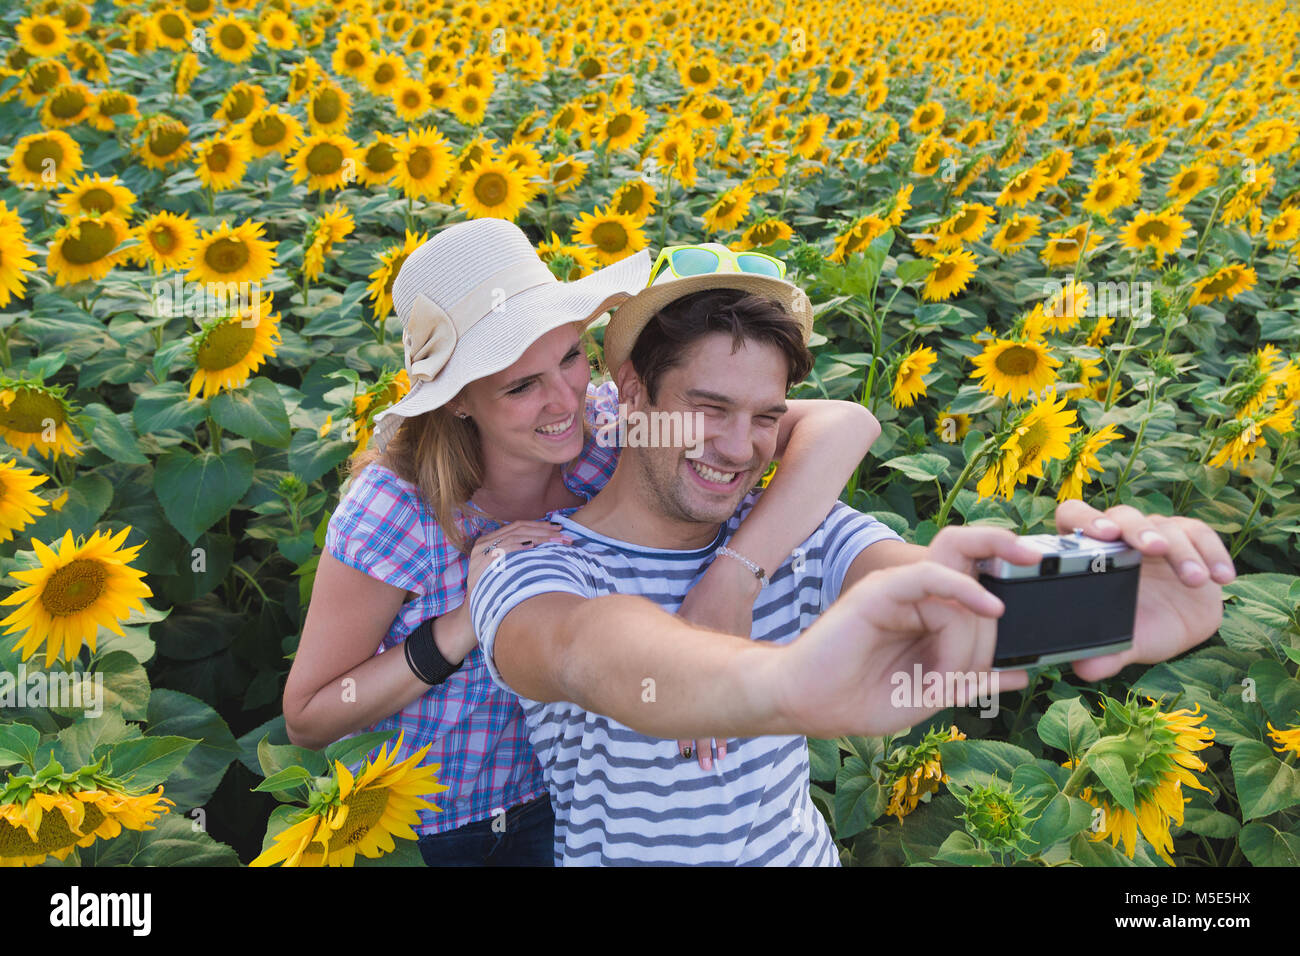 Young heterosexual couple taking selfie in sunflower field by using retro vintage film camera. Love and summertime Stock Photo